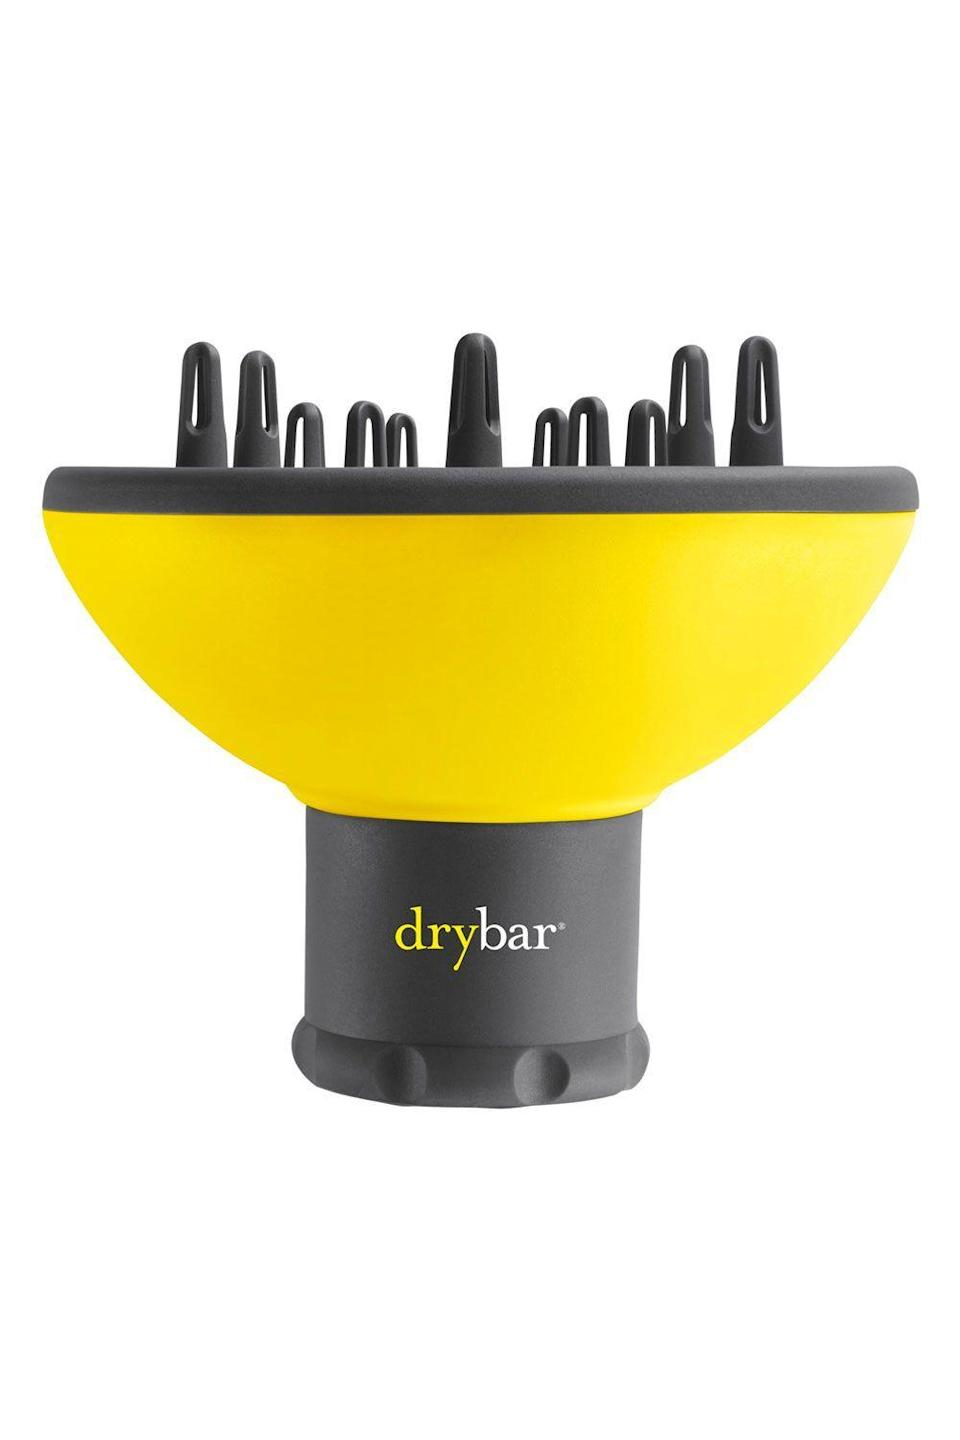 """<p><strong>Drybar</strong></p><p>amazon.com</p><p><strong>$34.00</strong></p><p><a href=""""https://www.amazon.com/dp/B06X9MHL9C?tag=syn-yahoo-20&ascsubtag=%5Bartid%7C10049.g.29369638%5Bsrc%7Cyahoo-us"""" rel=""""nofollow noopener"""" target=""""_blank"""" data-ylk=""""slk:Shop Now"""" class=""""link rapid-noclick-resp"""">Shop Now</a></p><p>Although this diffuser is technically designed for Drybar's iconic <a href=""""https://www.amazon.com/DRYBAR-Buttercup-Drybar-Blow-Dryer/dp/B00BIGARH6"""" rel=""""nofollow noopener"""" target=""""_blank"""" data-ylk=""""slk:Buttercup blow dryer"""" class=""""link rapid-noclick-resp"""">Buttercup blow dryer</a>, it can actually fit any blow dryer that has a nozzle diameter of 2 inches (a common nozzle size). <strong>Its staggered prongs also make it easy to catch and dry curls of any length</strong> without them slipping. Pro tip: Gather a clump of your damp curls with your hand and gently place the entire bundle on top of the bowl—rather than mashing the diffuser to your head—to help define your pattern.</p>"""